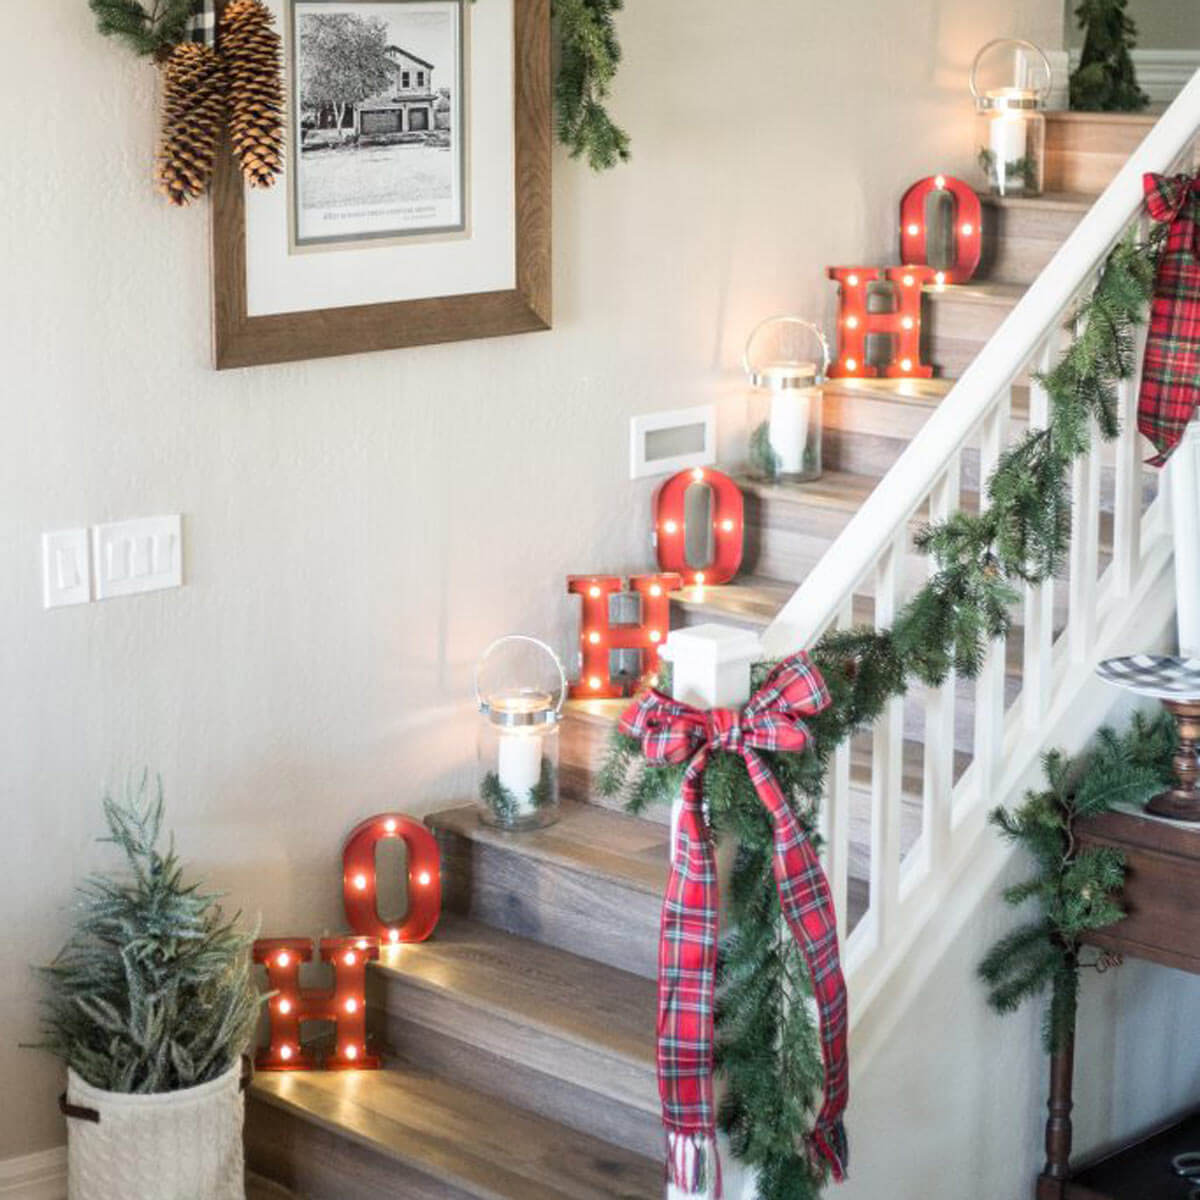 Mesmerizing Christmas Decoration Ideas for Home - The ...